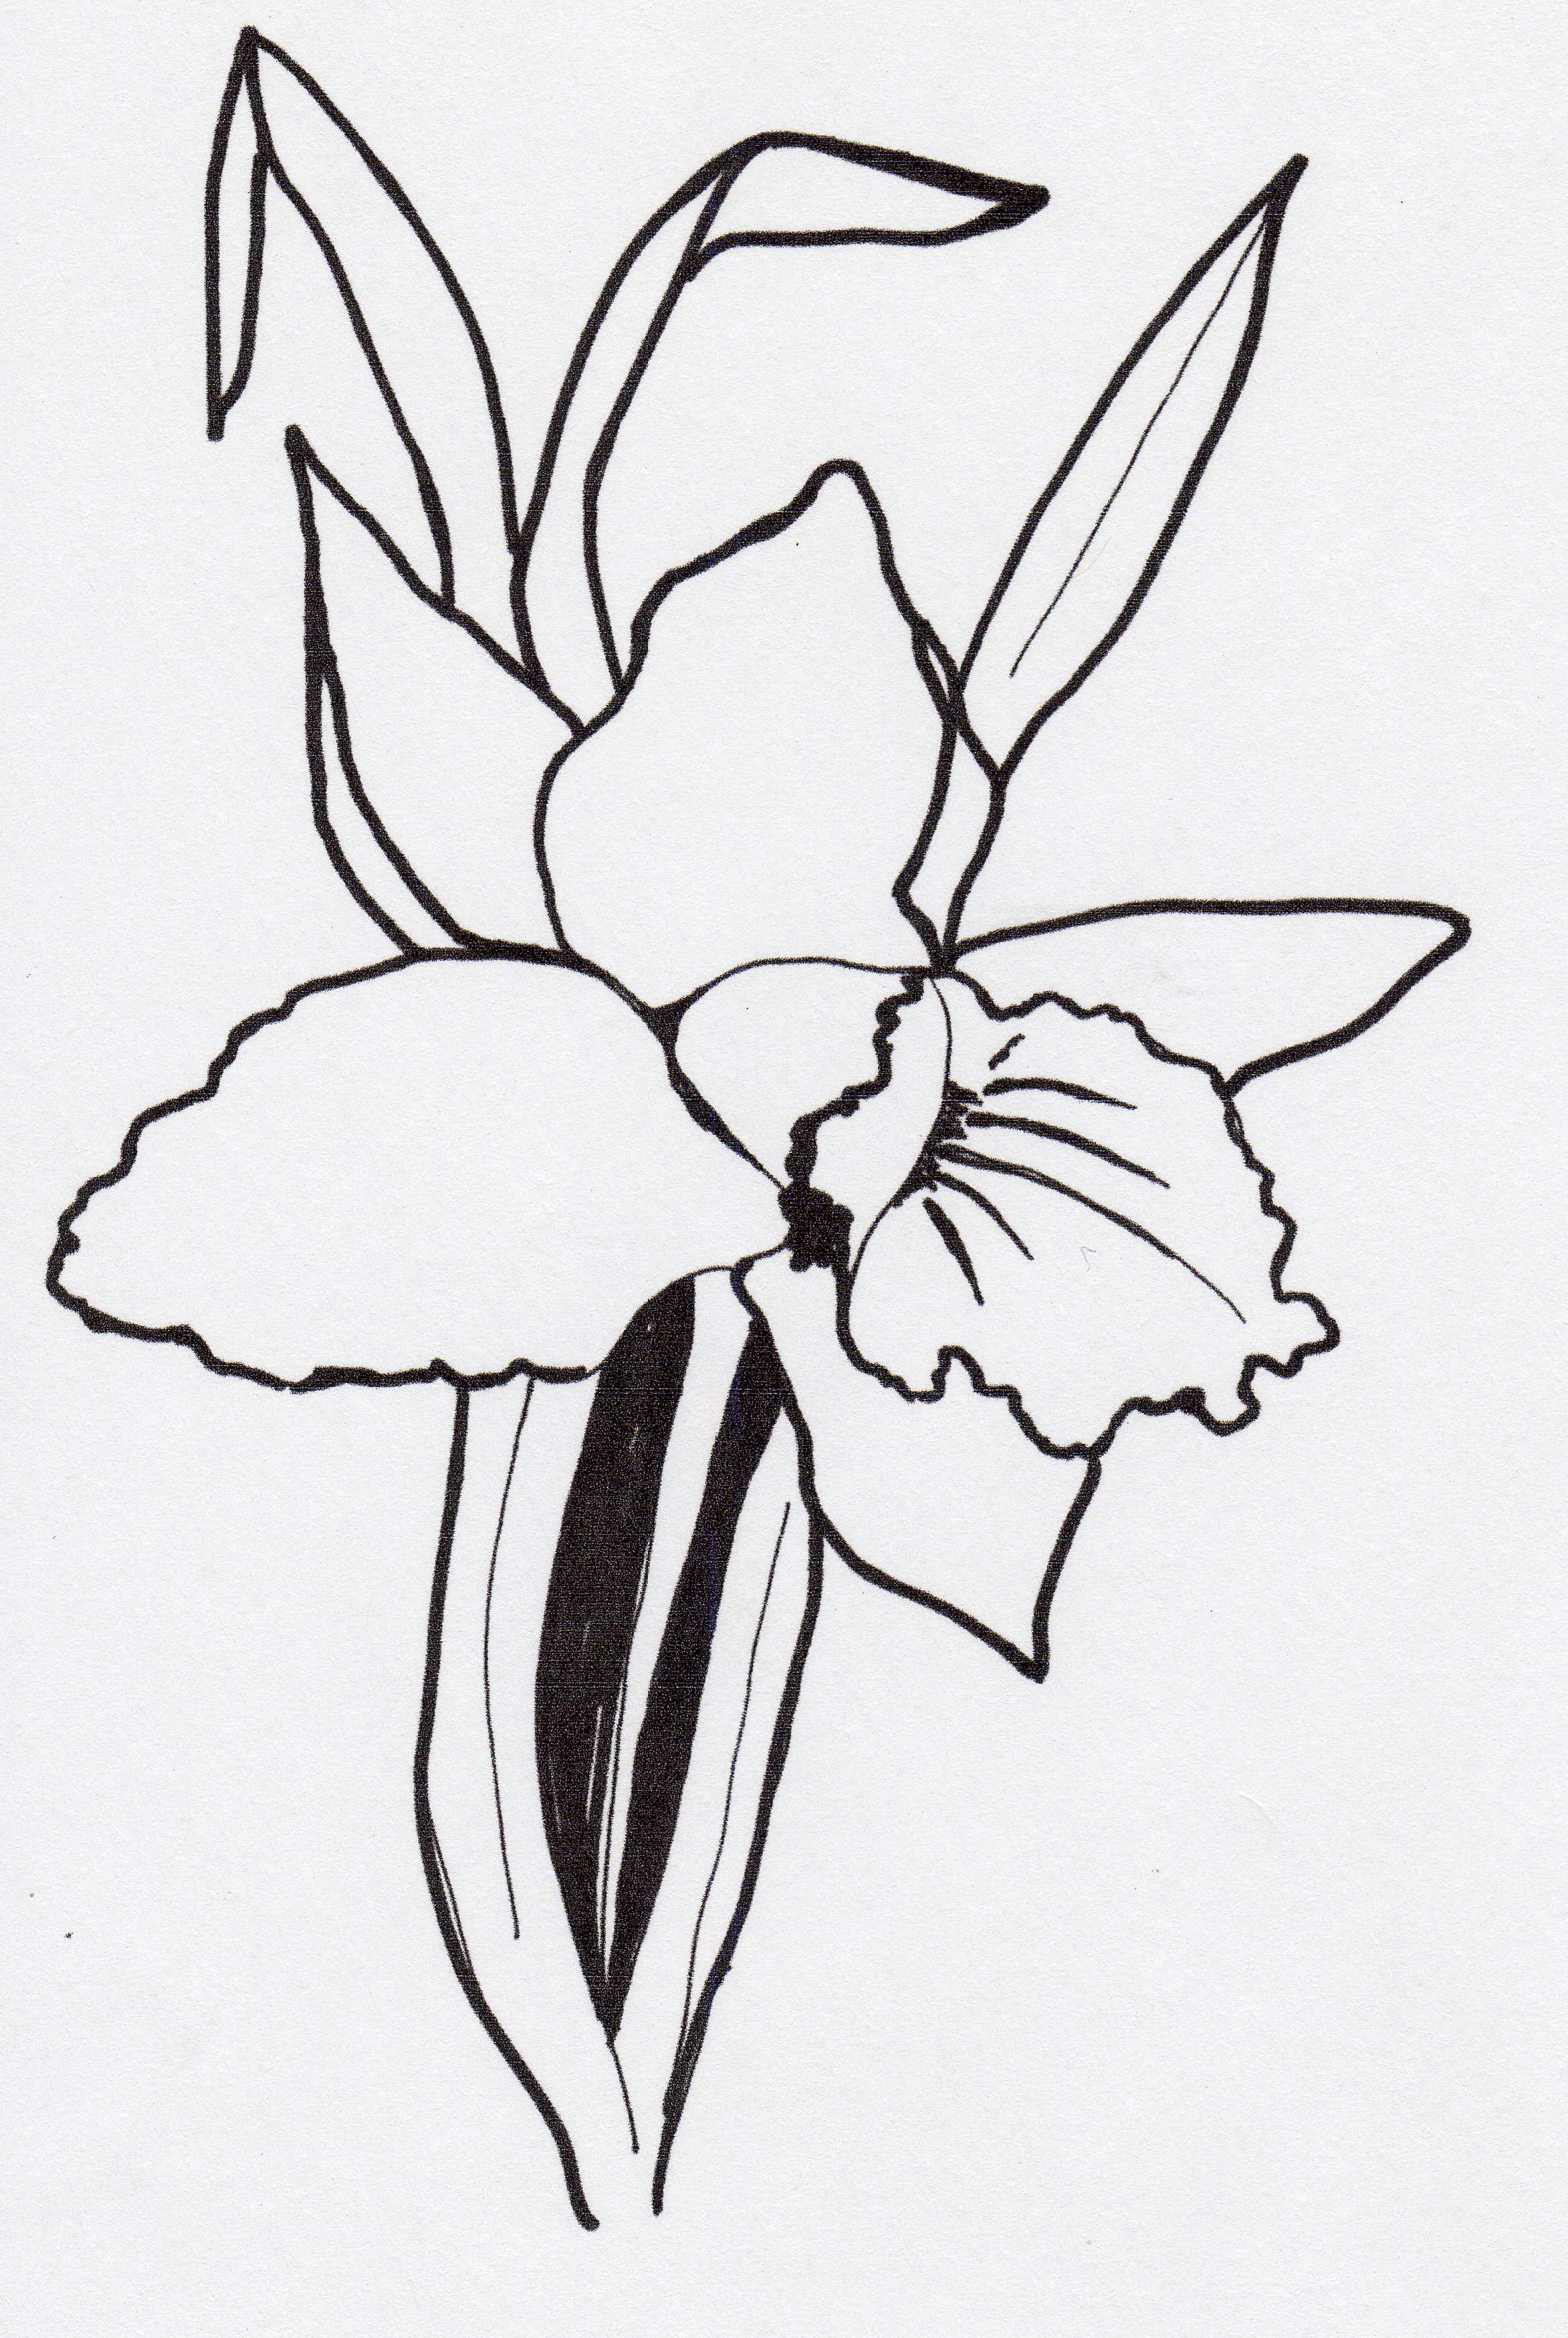 Orchid Line Drawings Orchid Image By...2345 x 3496